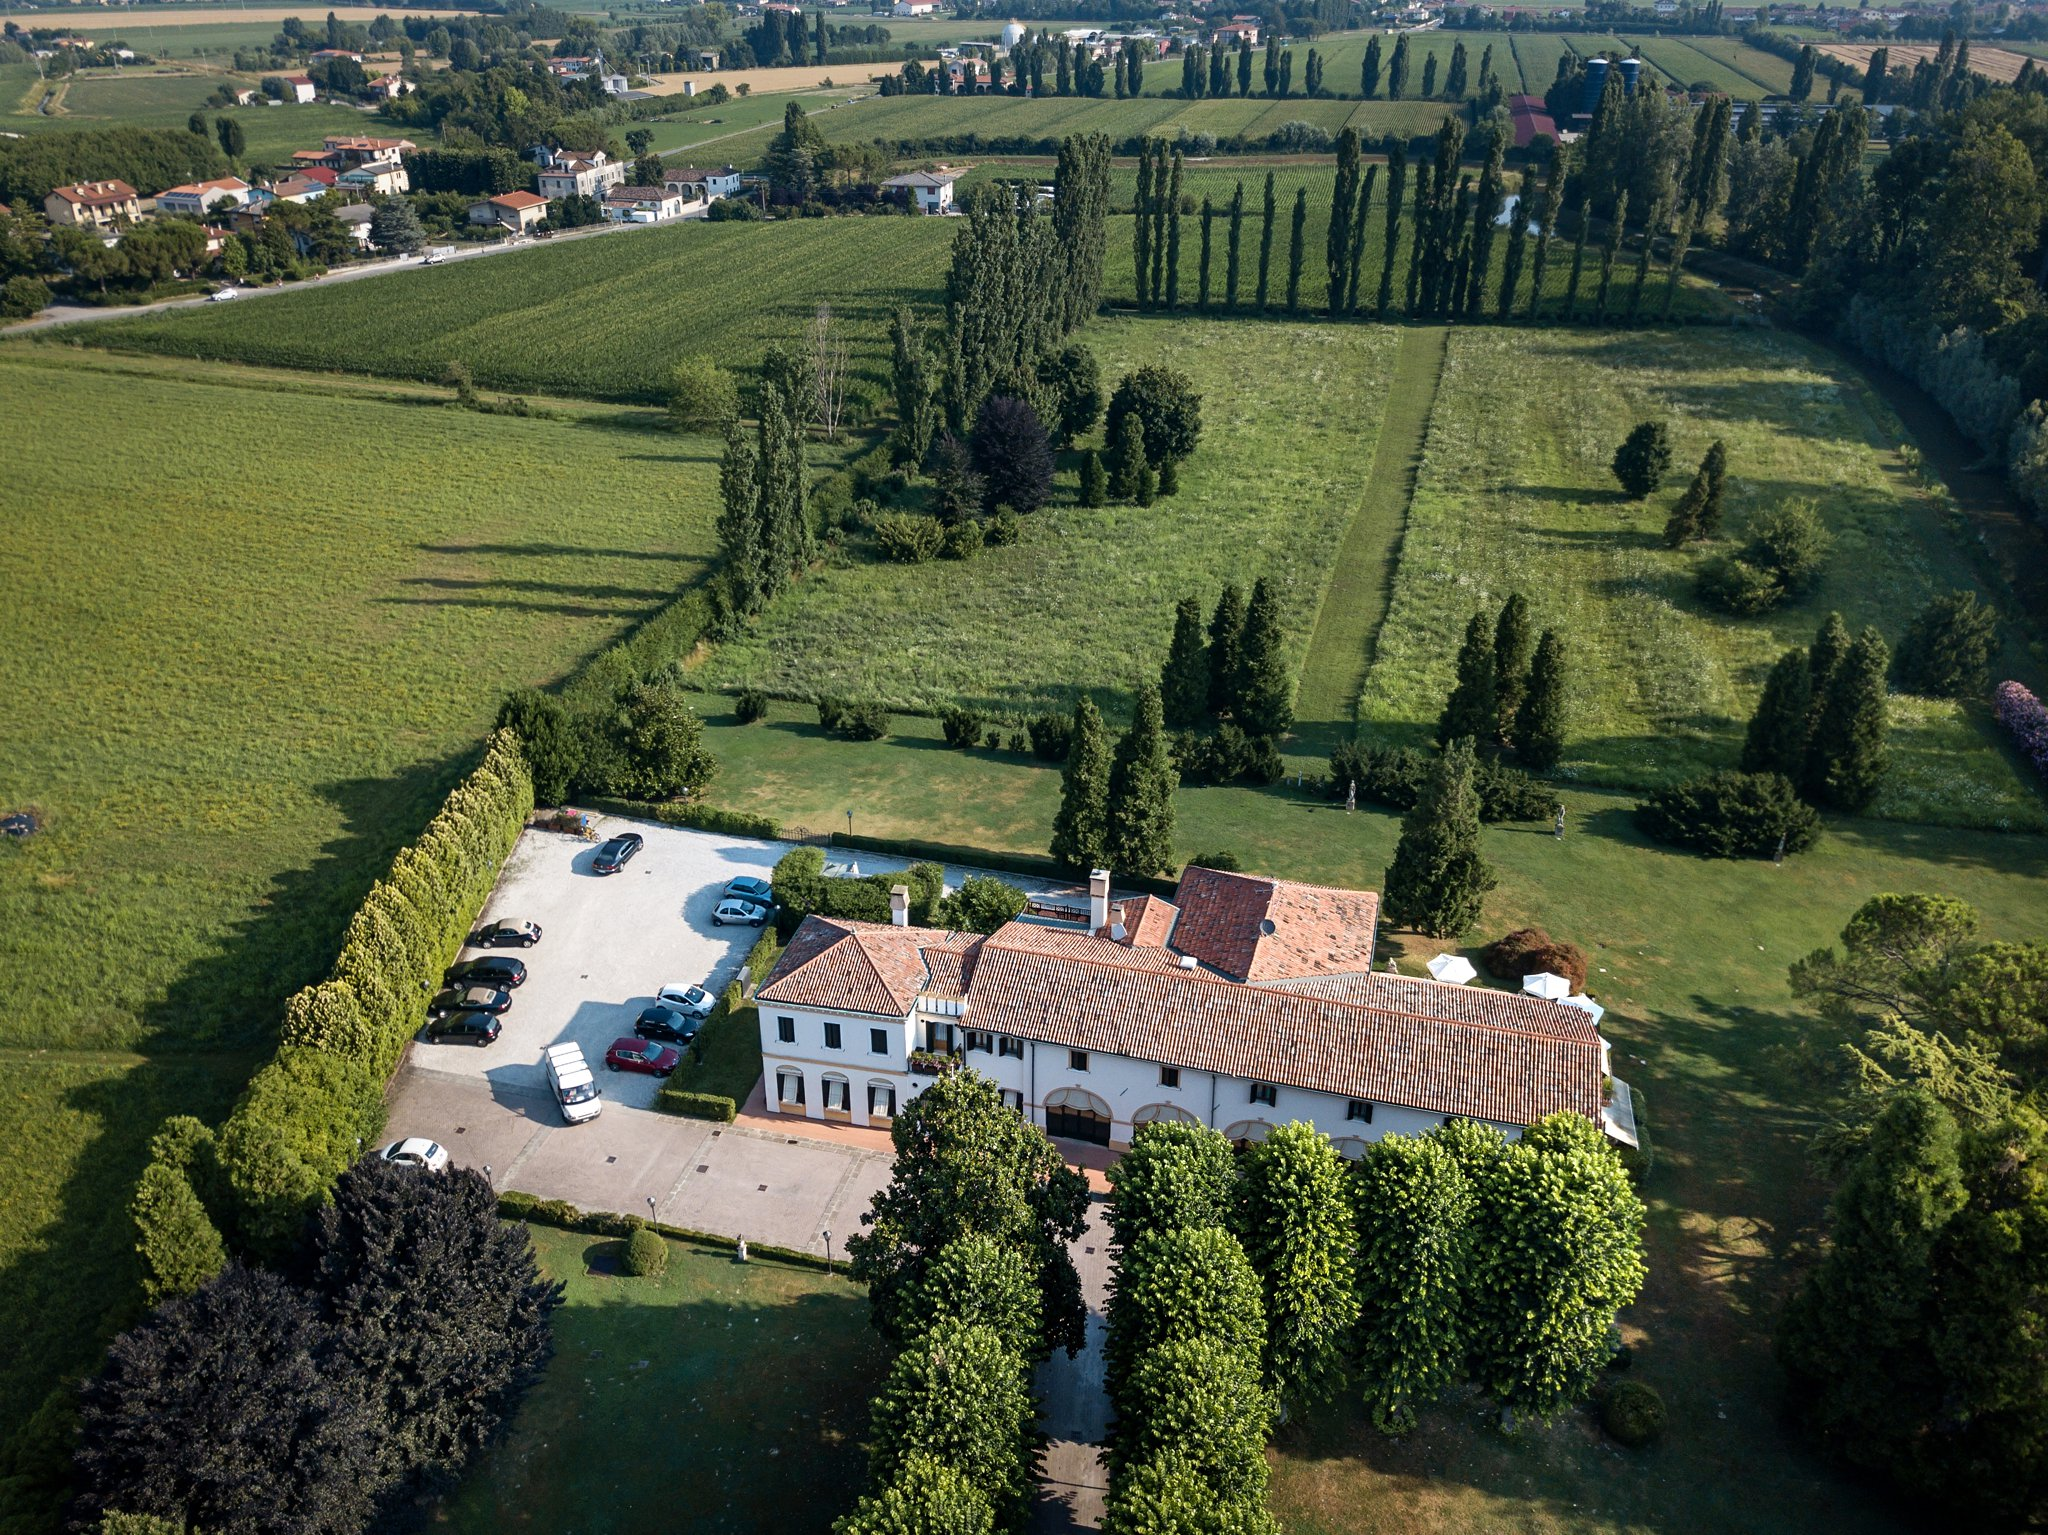 Villa Margherita - aerial view - country house hotel, Veneto - The base for our Writer's Retreat in the glorious Veneto region, 08-15 September, 2019 - https://wp.me/p5eFNn-3DV